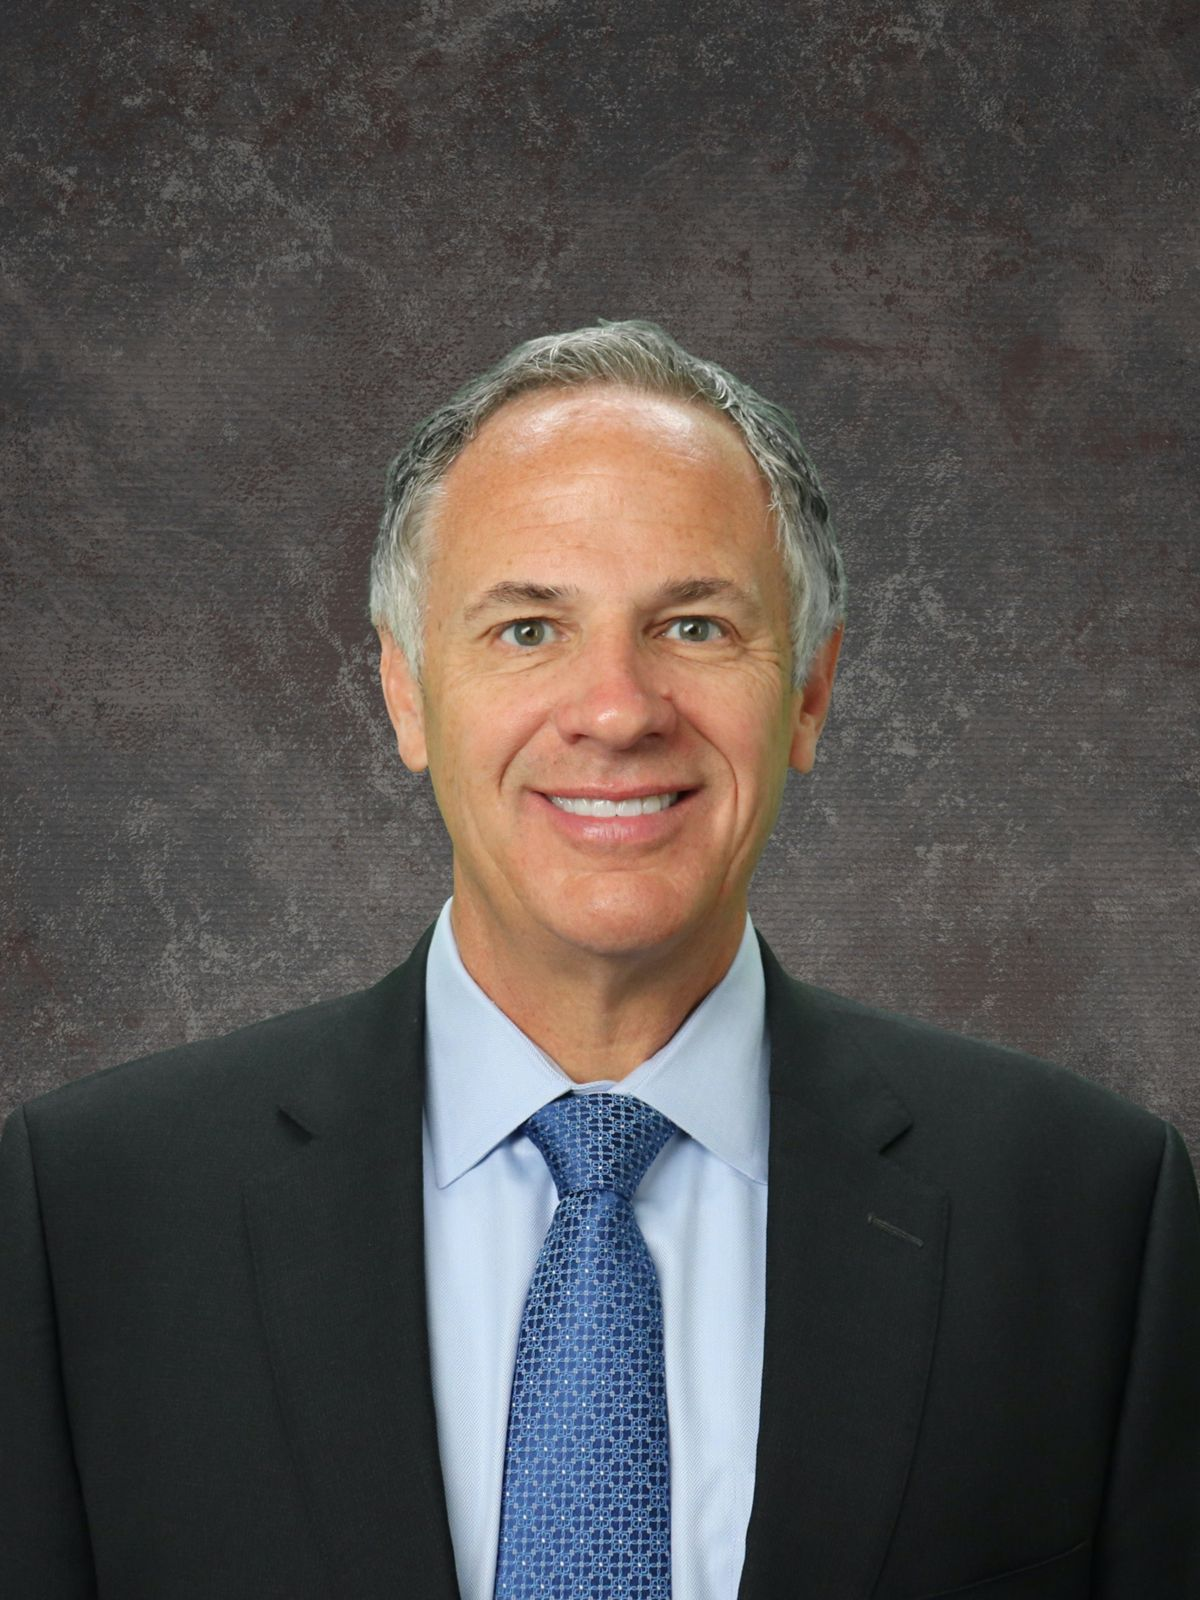 Sunwest Bank Hires Paul Simmons as EVP and Chief Credit Officer, Sunwest Bank